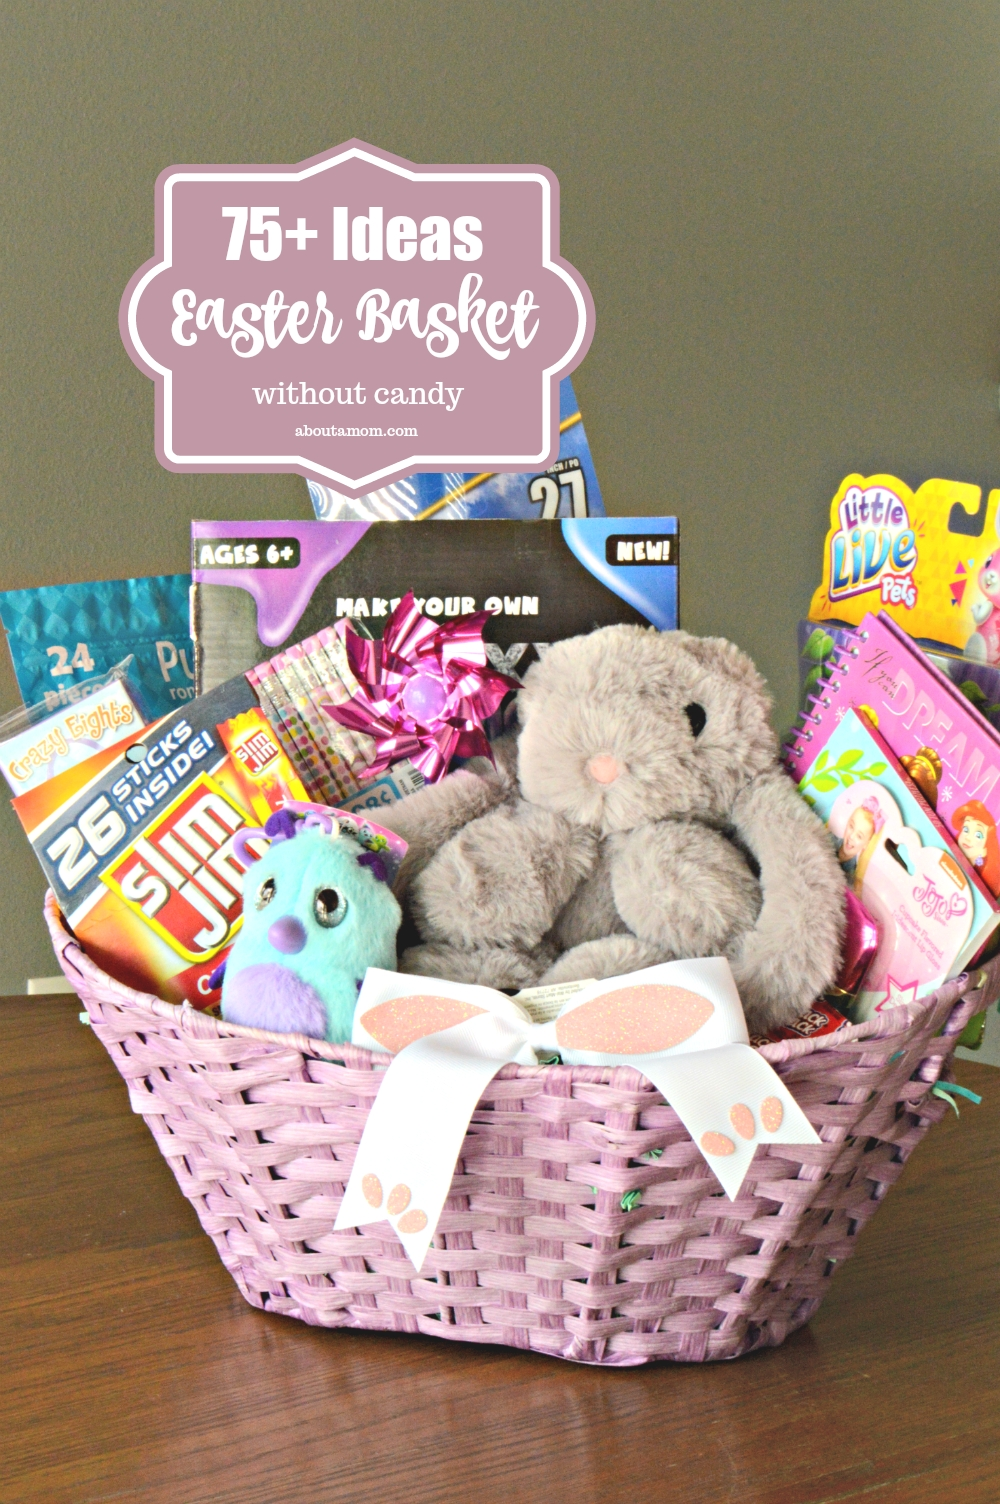 10 Cute Non Candy Easter Basket Ideas 75 fun easter basket ideas about a mom 2 2020